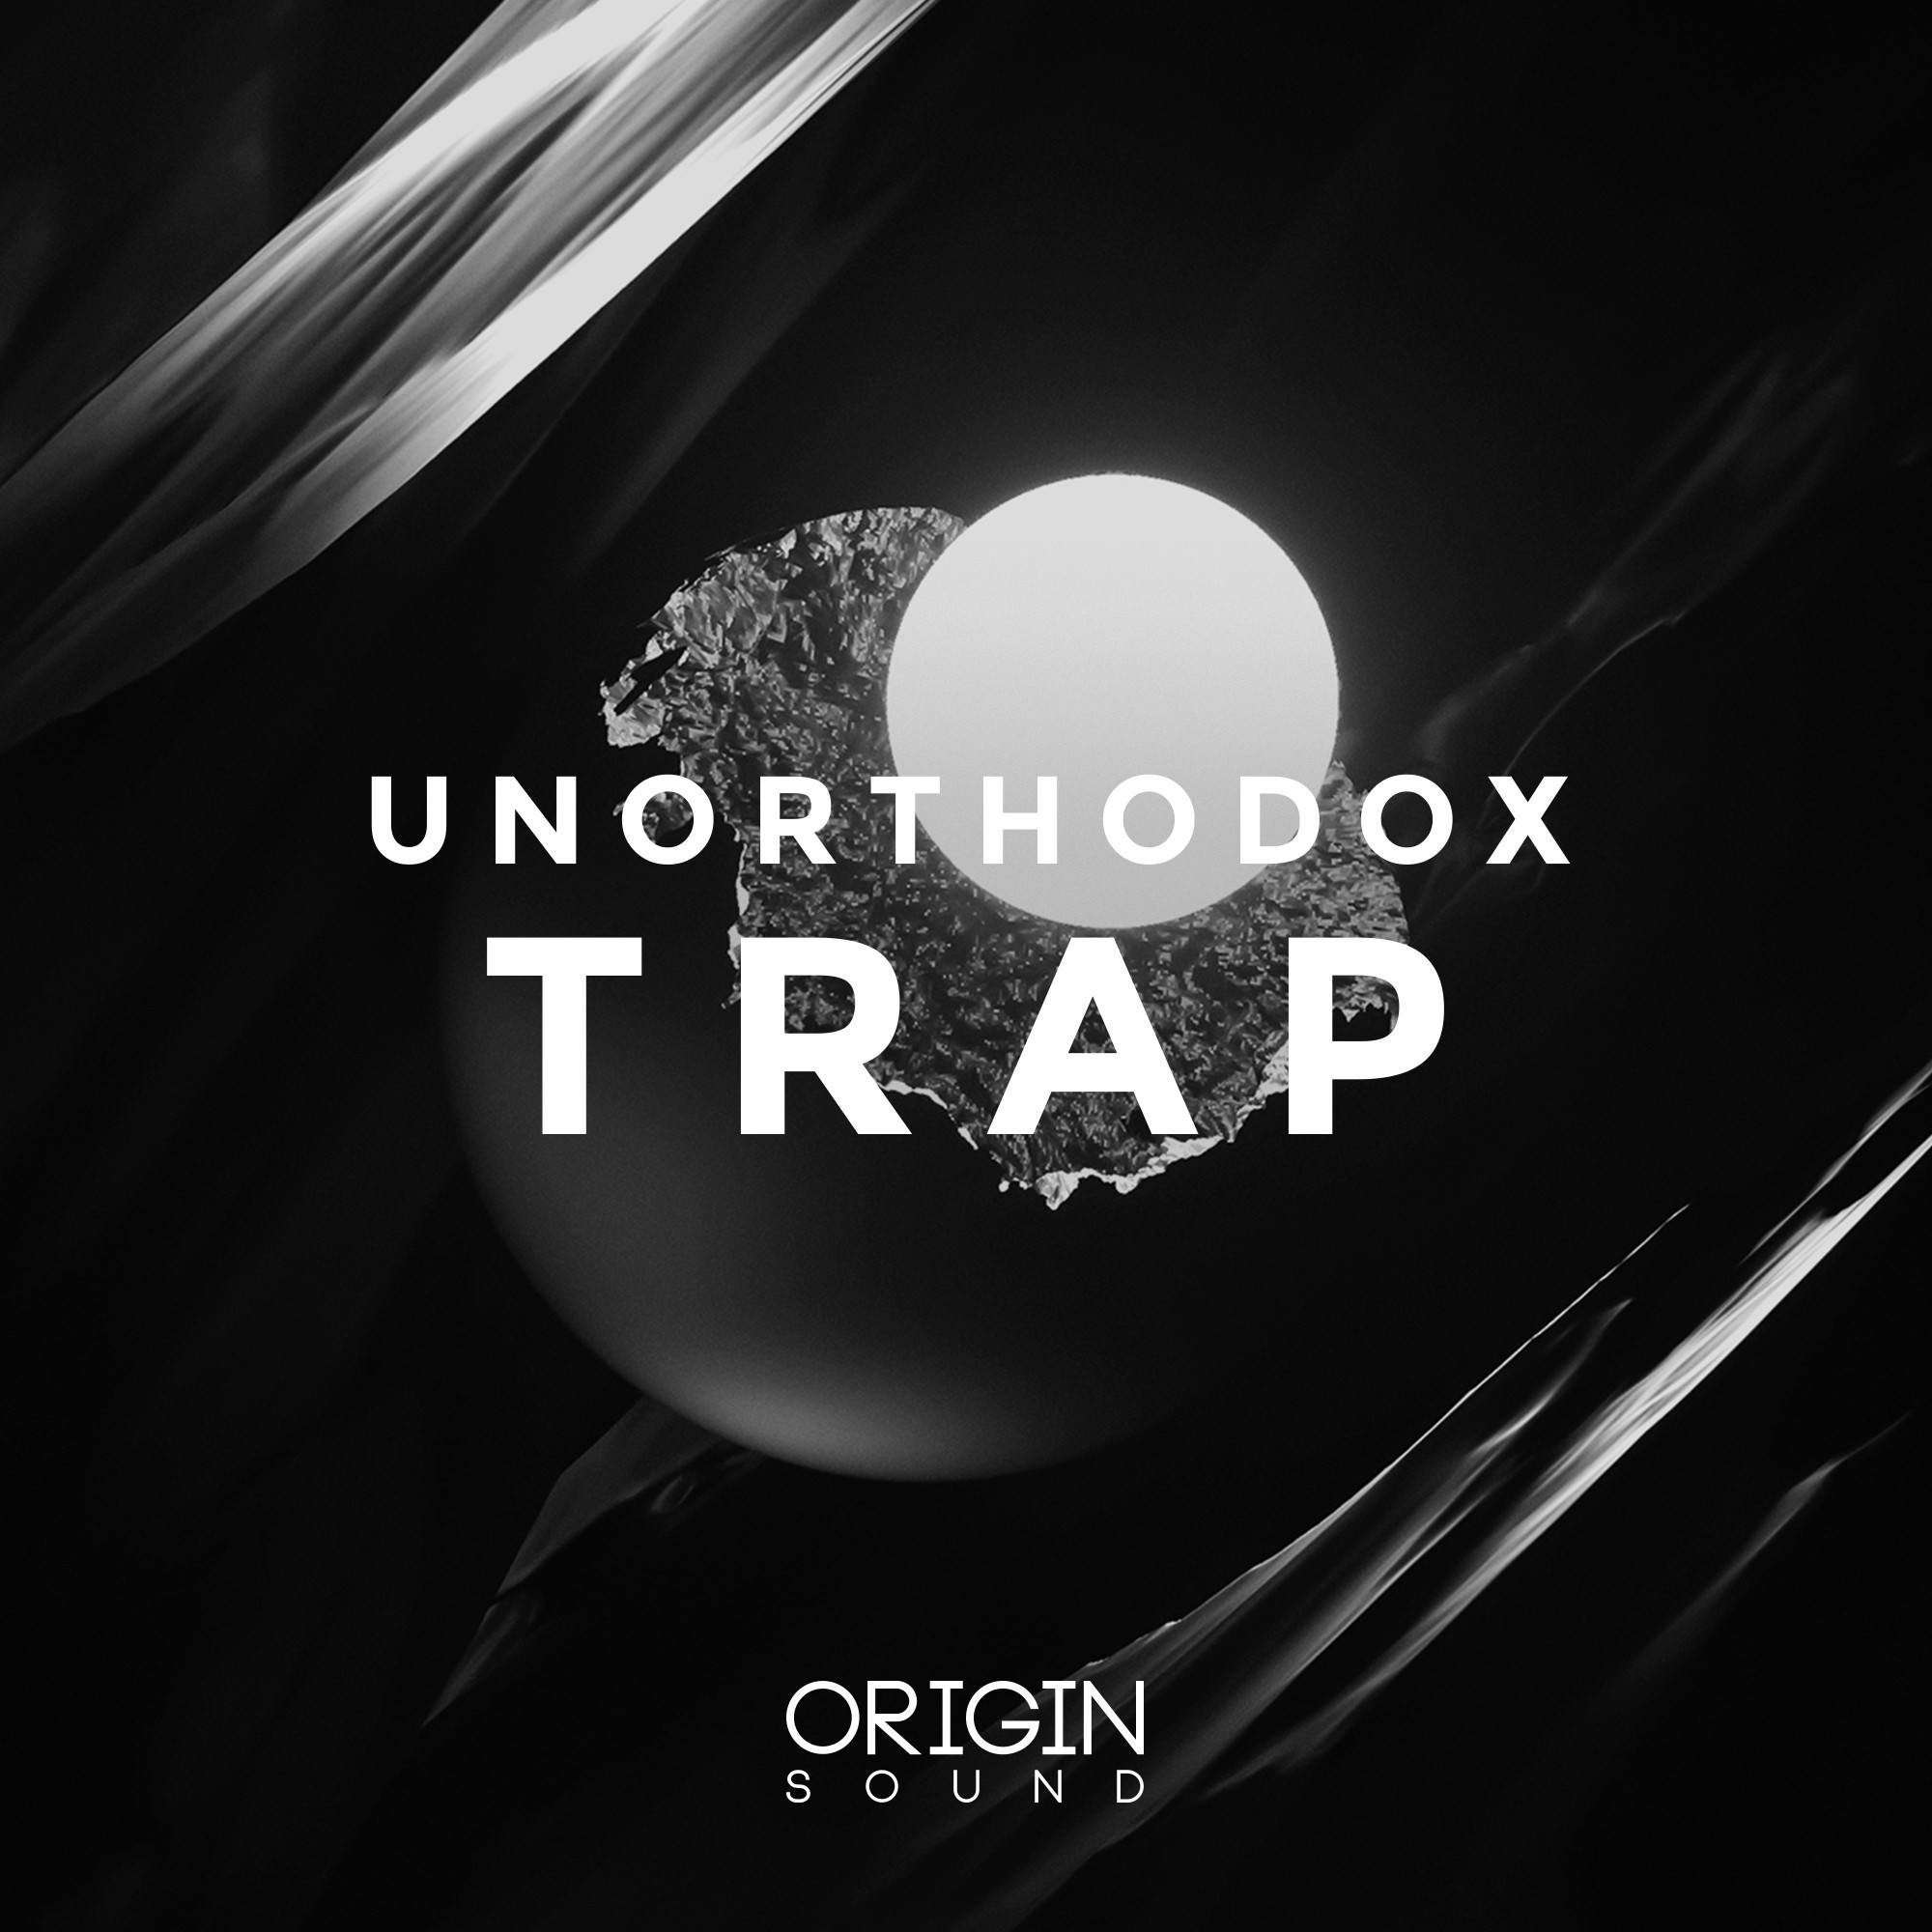 Unorthodox Trap - Vol 1 Sample Pack, Origin Sound, Origin Sound - Origin Sound samples royalty free fundamental ambience pack edm electronic ableton live fl studio logic pro piano drums keys bass chords midi melodies IDM organic downtempo tisoki presets elysian utopia free samples